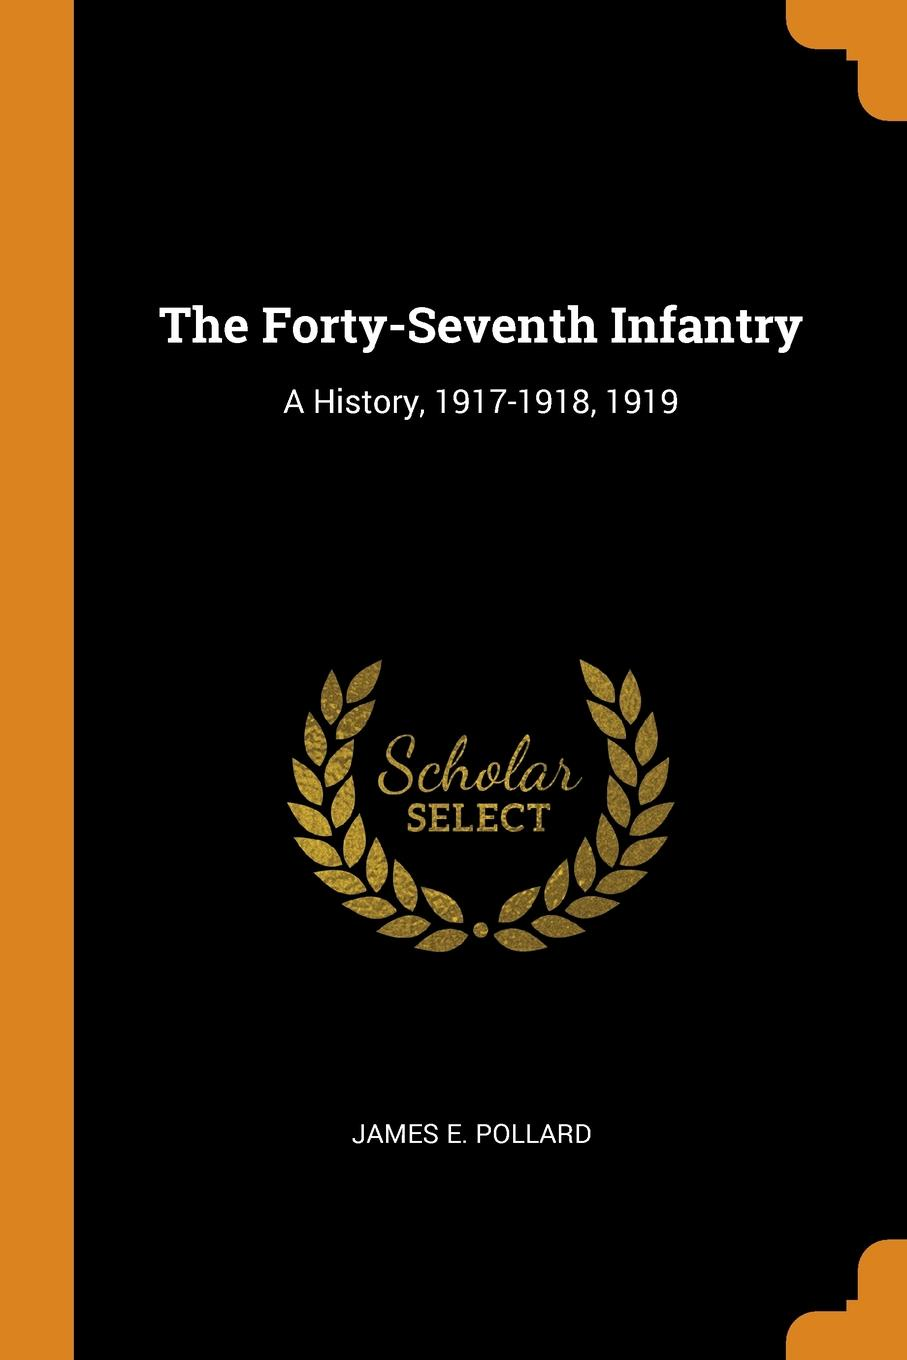 James E. Pollard The Forty-Seventh Infantry. A History, 1917-1918, 1919